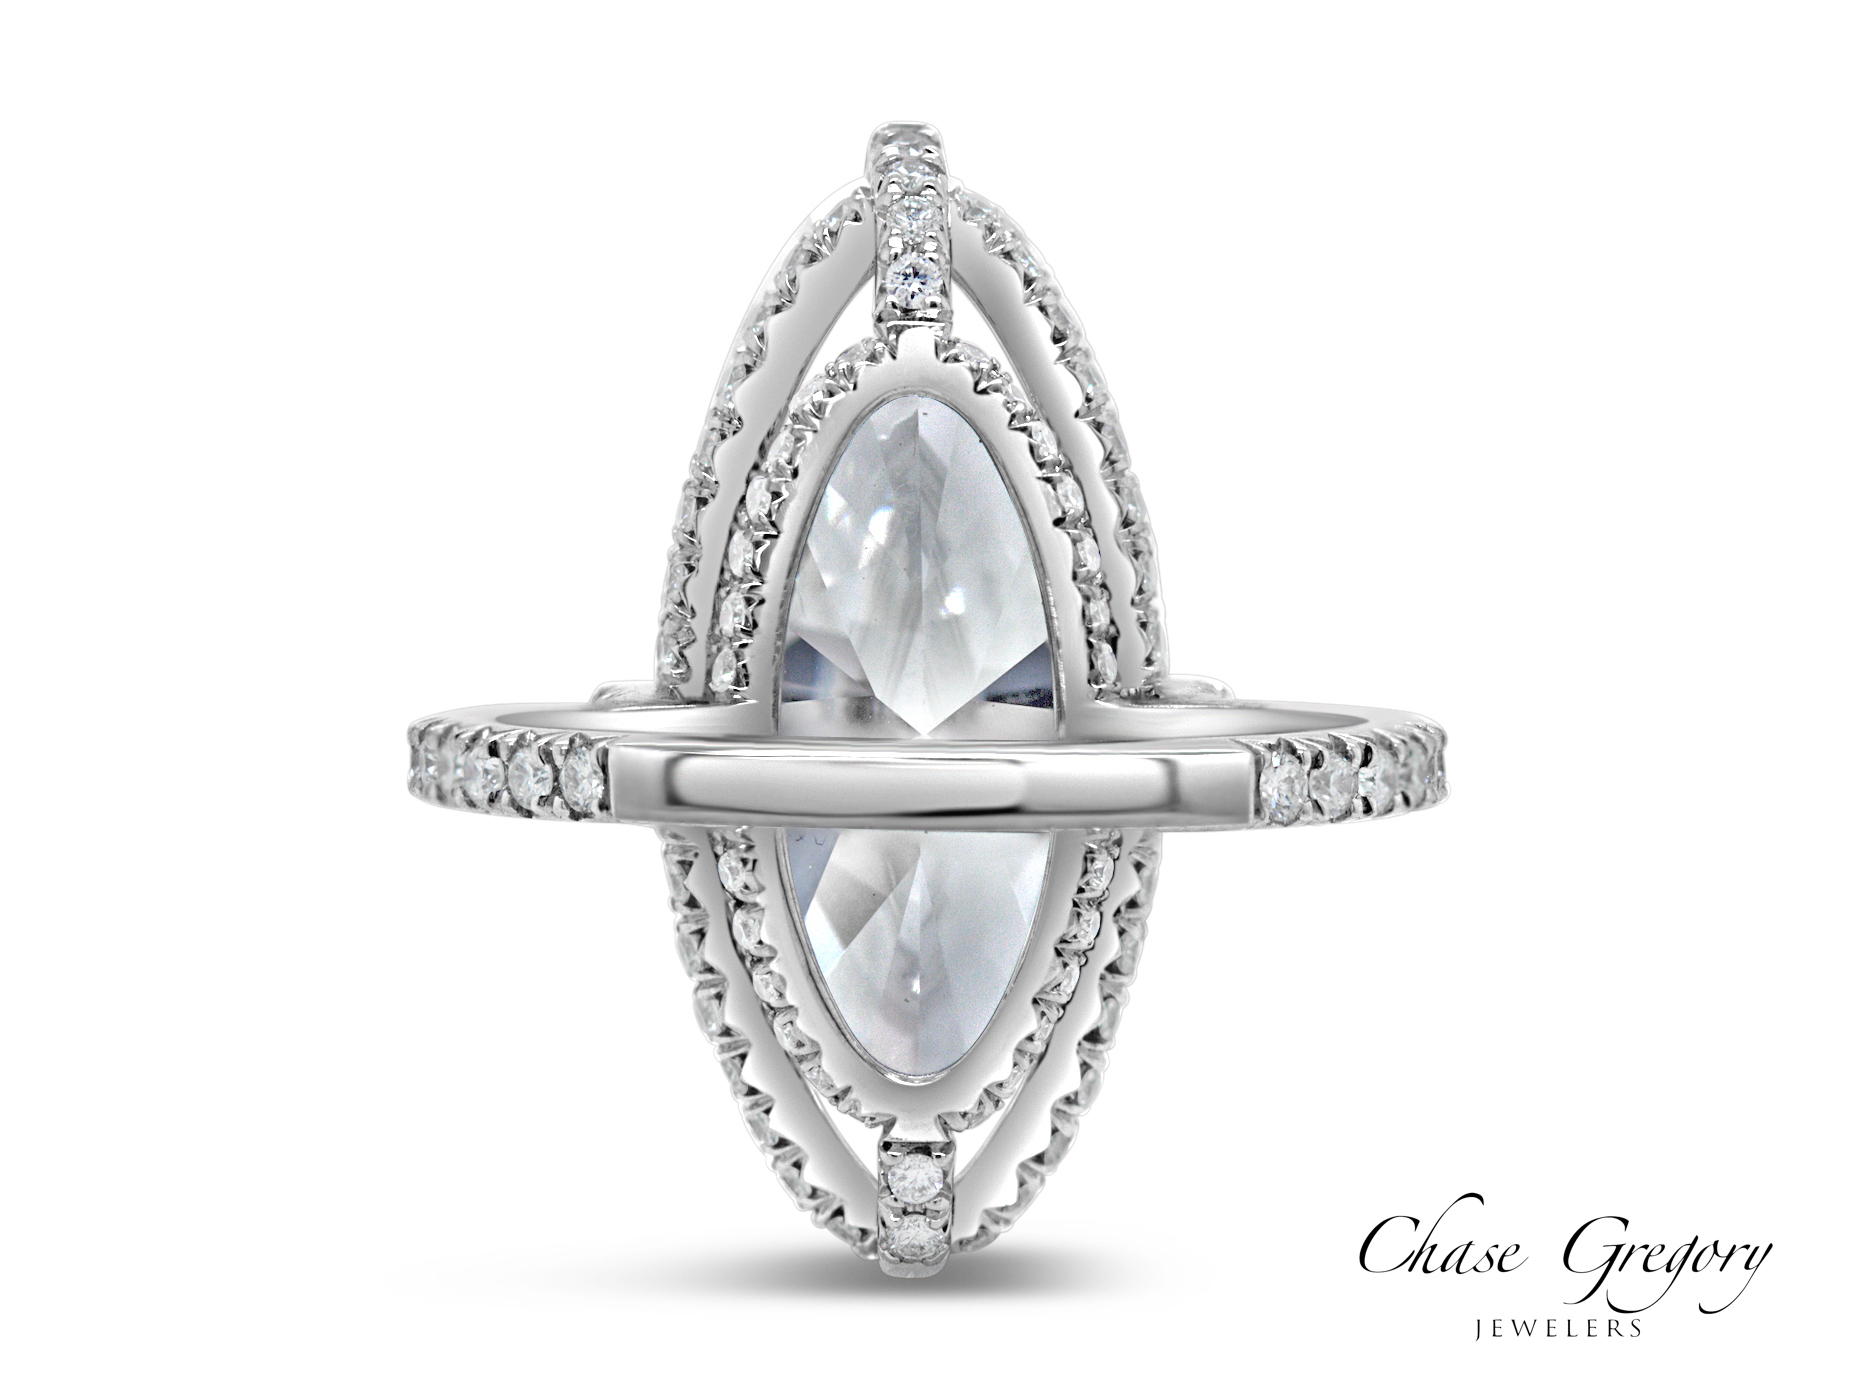 9 ct, moval, chase gregory jeweler